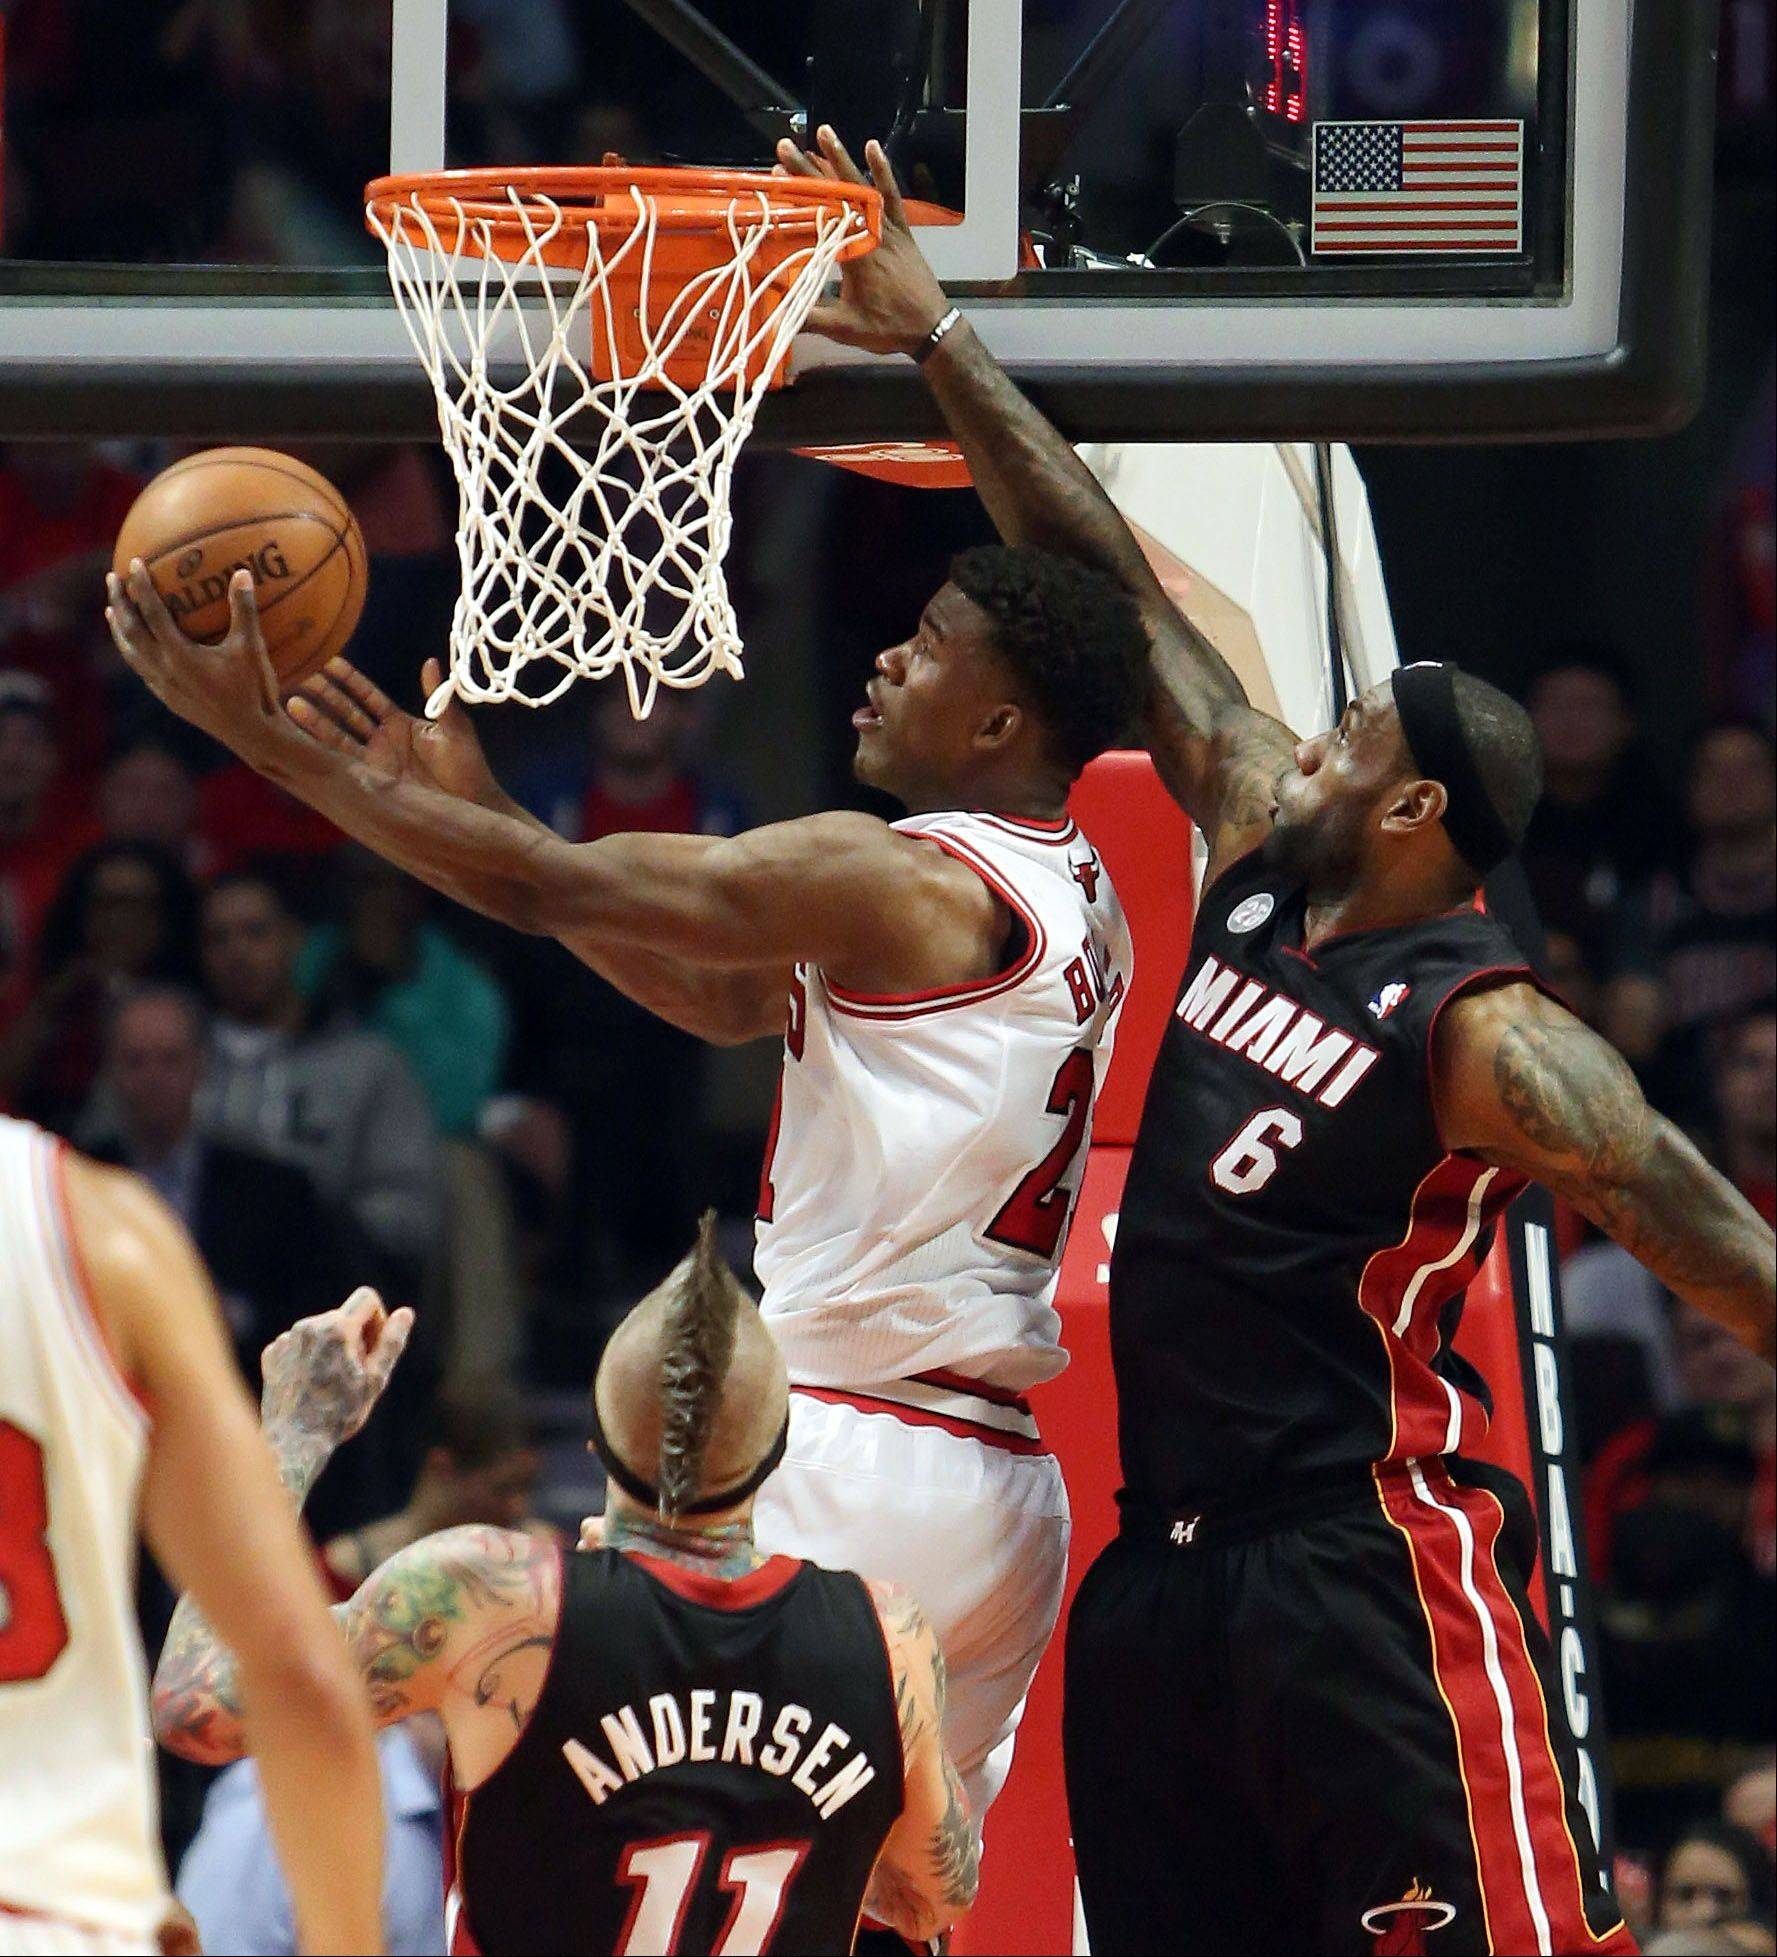 Chicago Bulls small forward Jimmy Butler drives past Miami Heat small forward LeBron James.